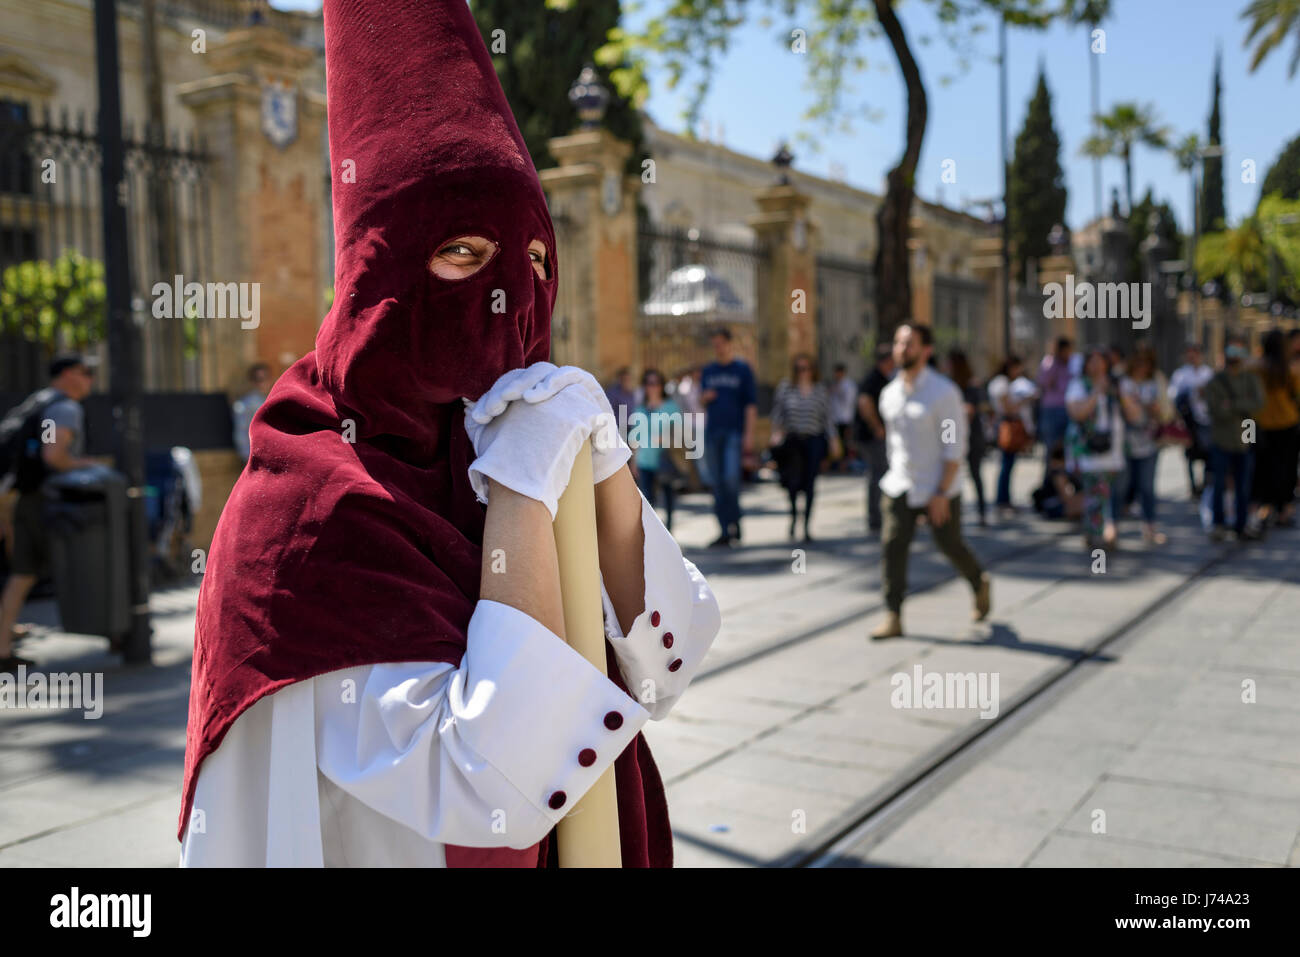 Portrait Of A Nazarene Penitent With Red Hood And White Robes Stock Photo Alamy